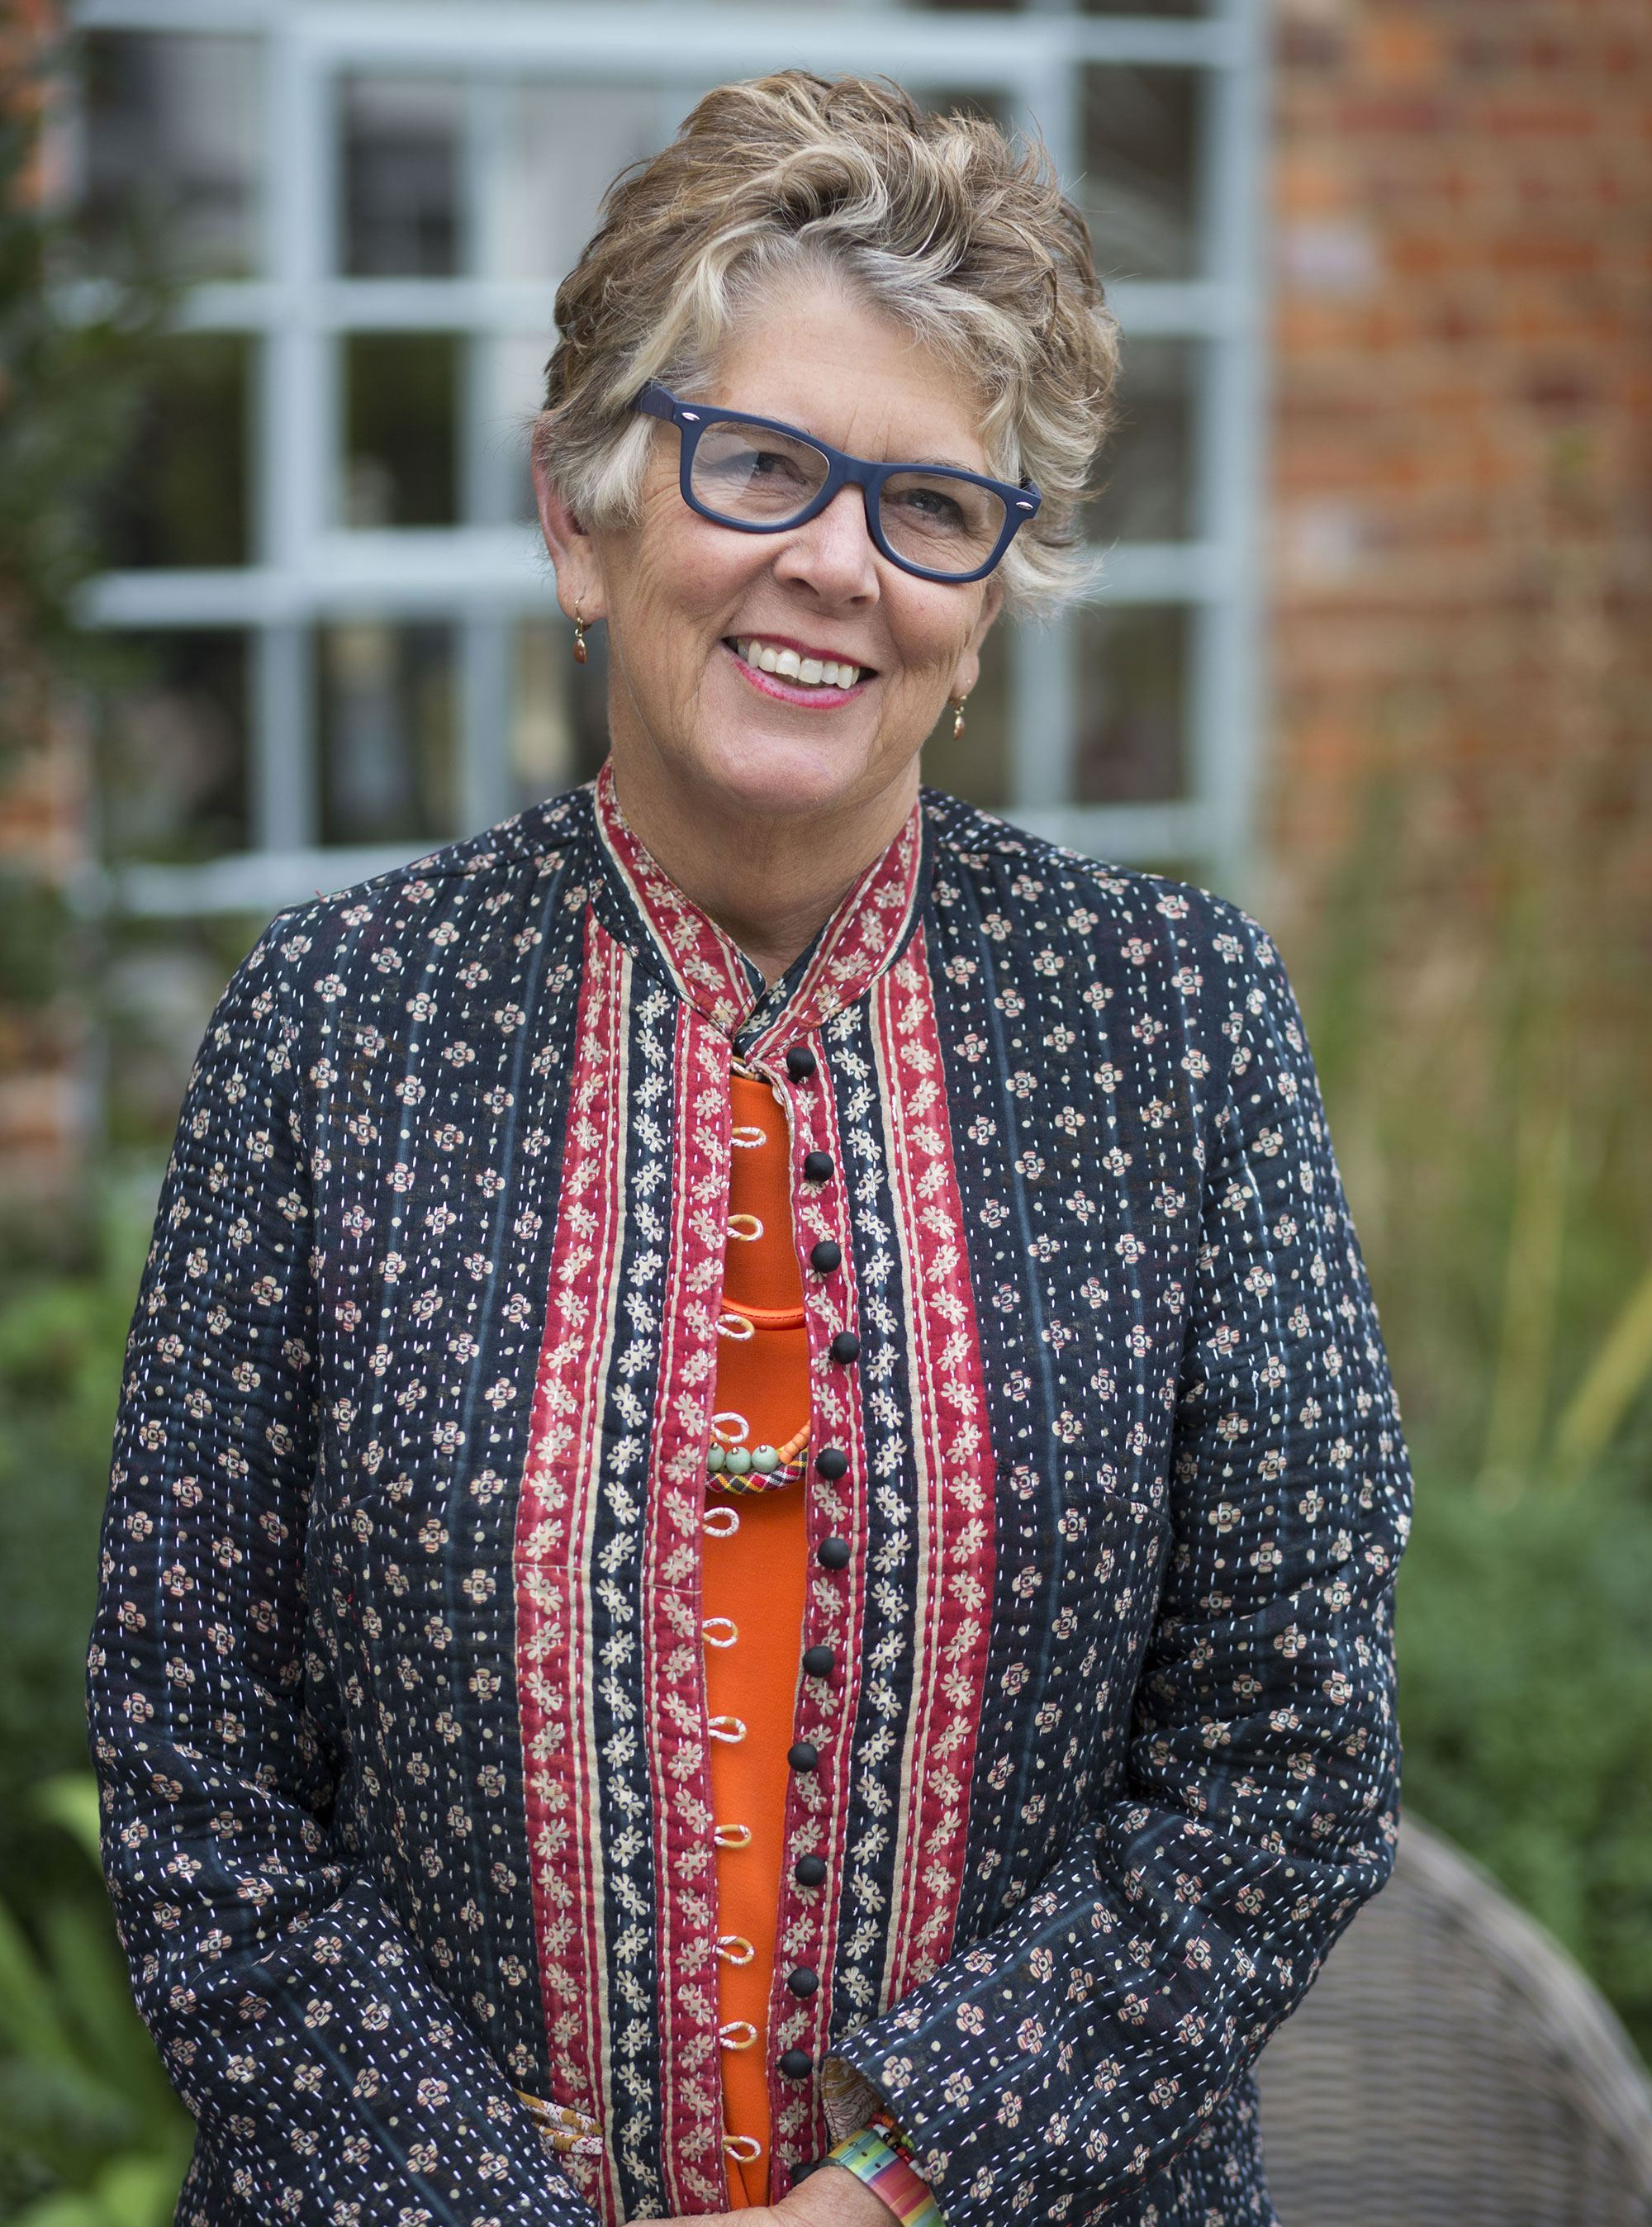 prueleith 26 Things You Didn't Know About Bake Off's Prue Leith